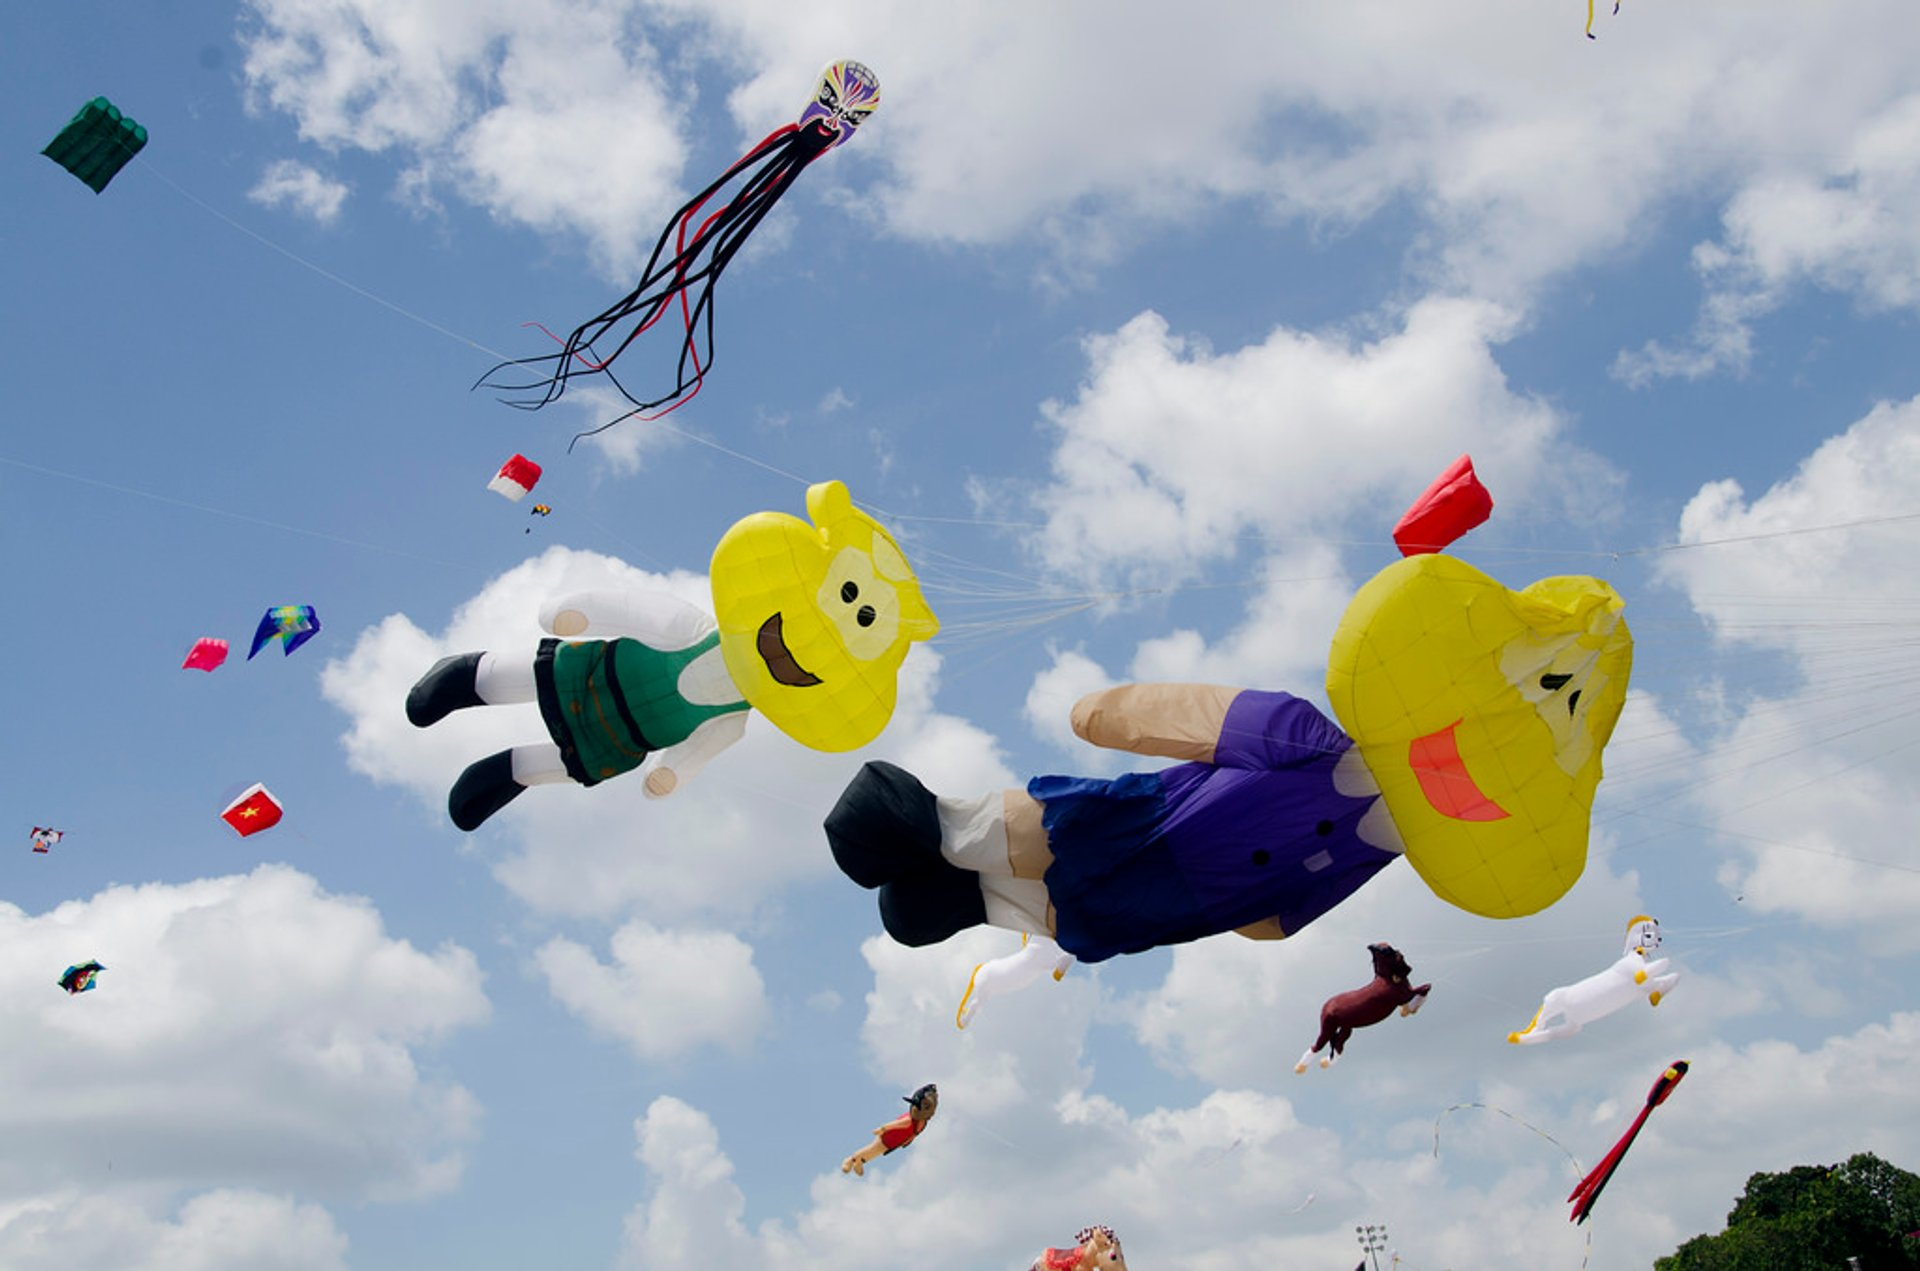 Traditional Kite Flying in Malaysia - Best Time